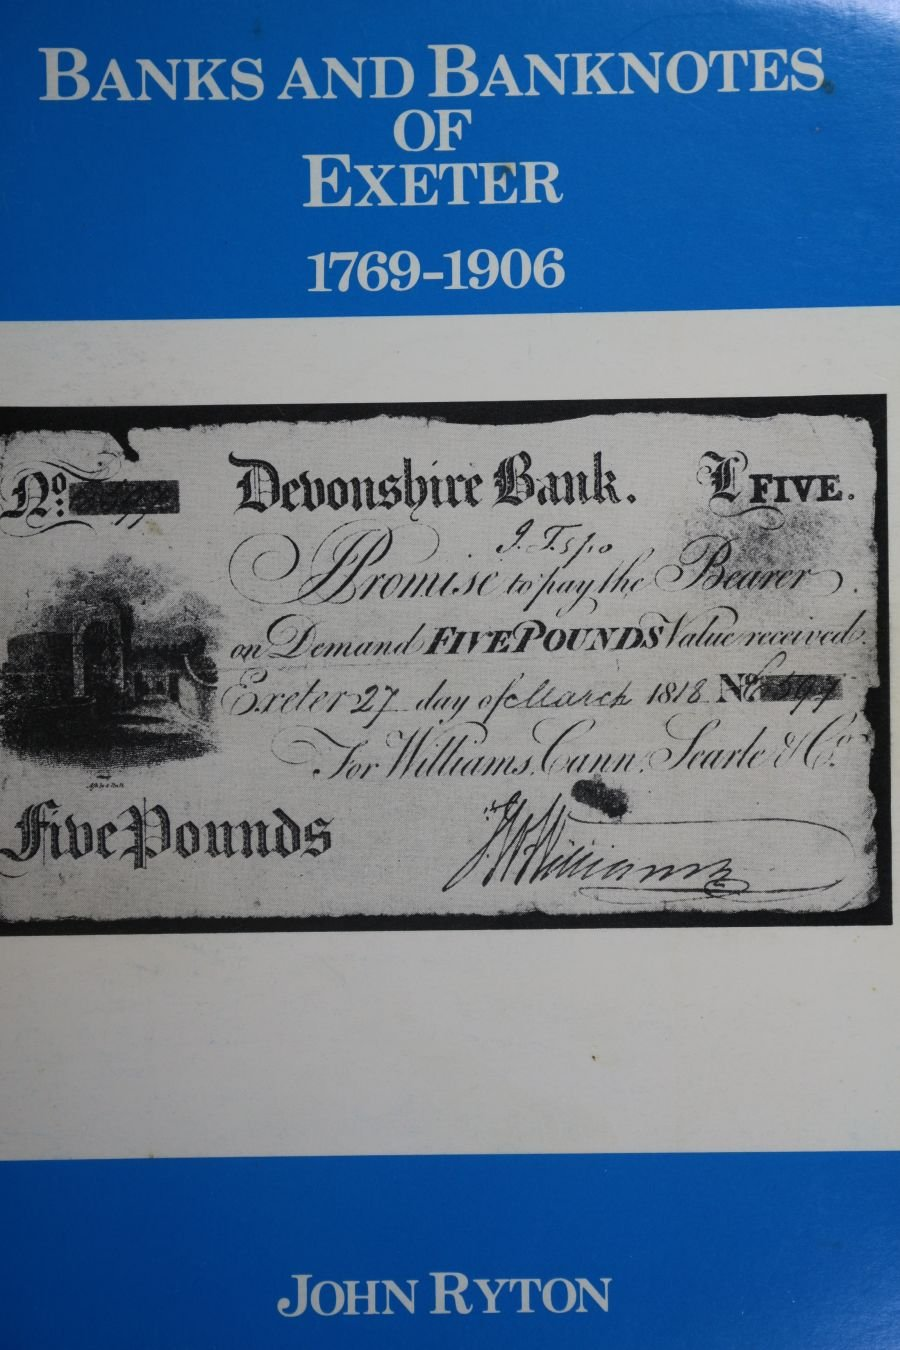 Banks and banknotes of Exeter 1769-1906 by John Ryton